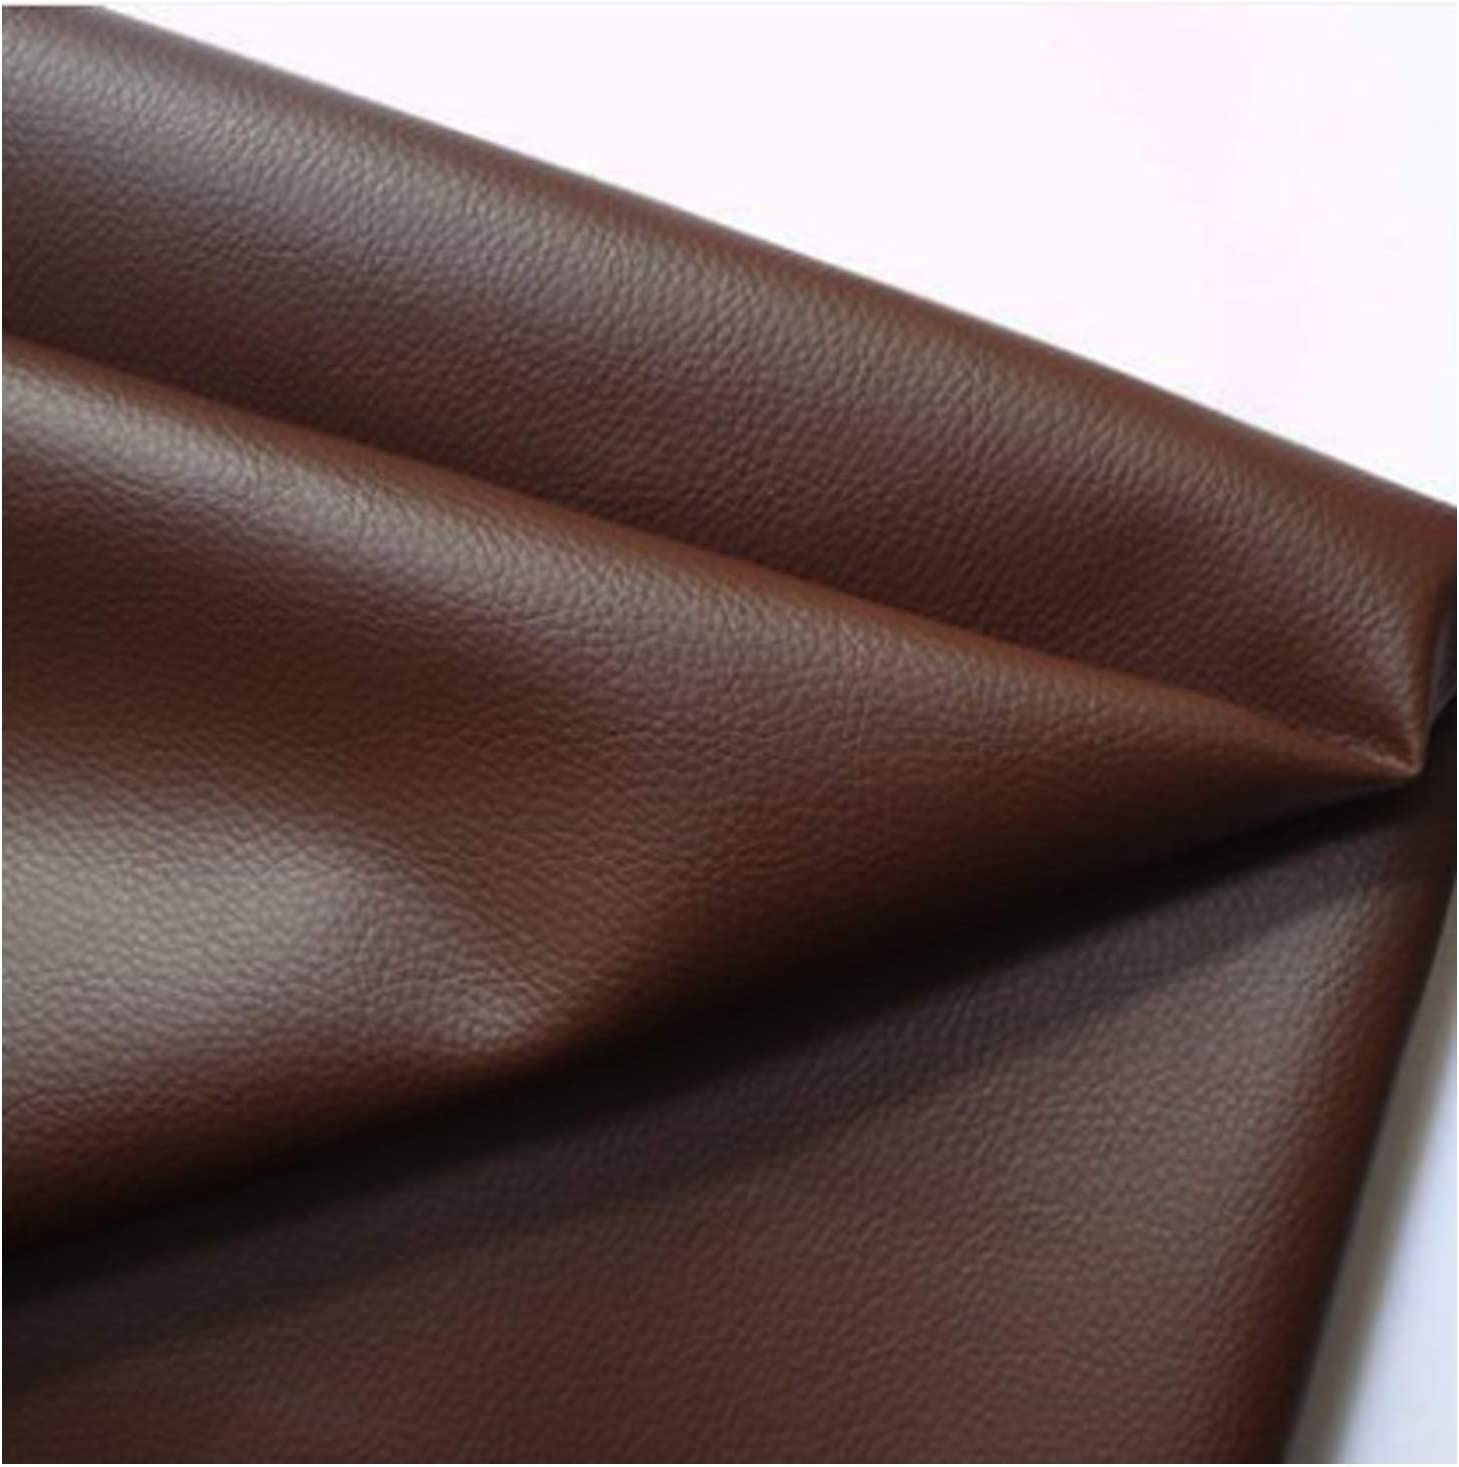 ZDFTCW Faux Suede Fabric Textur Litchi Don't miss the campaign Grain Limited time for free shipping Leather